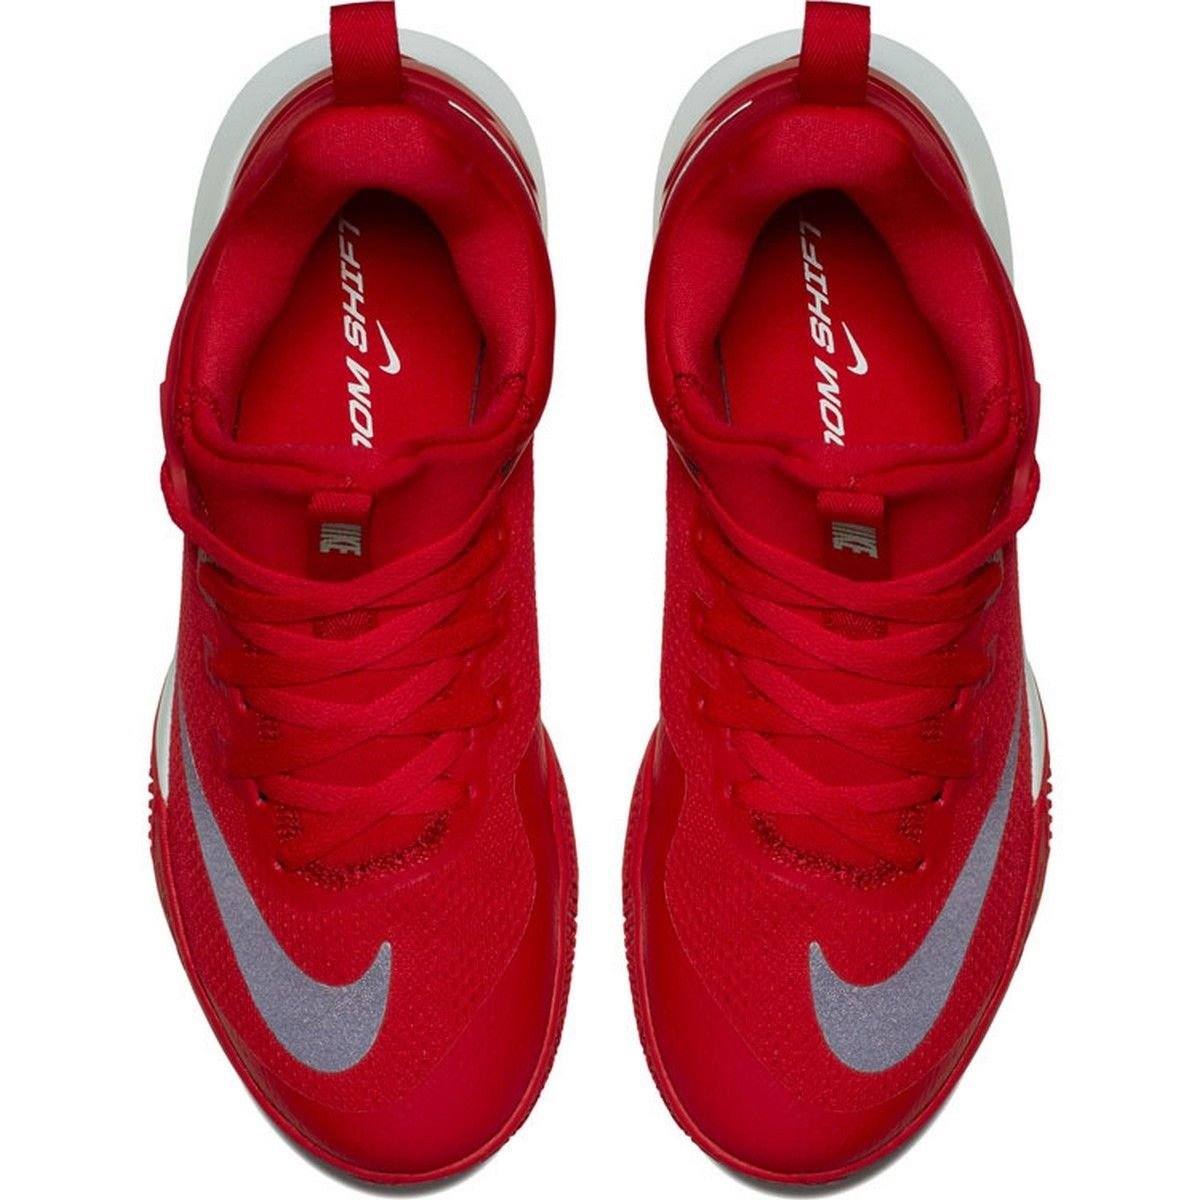 776cf446ea21 Amazon.com  MEN S NIKE ZOOM SHIFT TB BASKETBALL SHOES 897811-600 UNIV. RED  SZ 6.5 (1R12)  Sports Collectibles